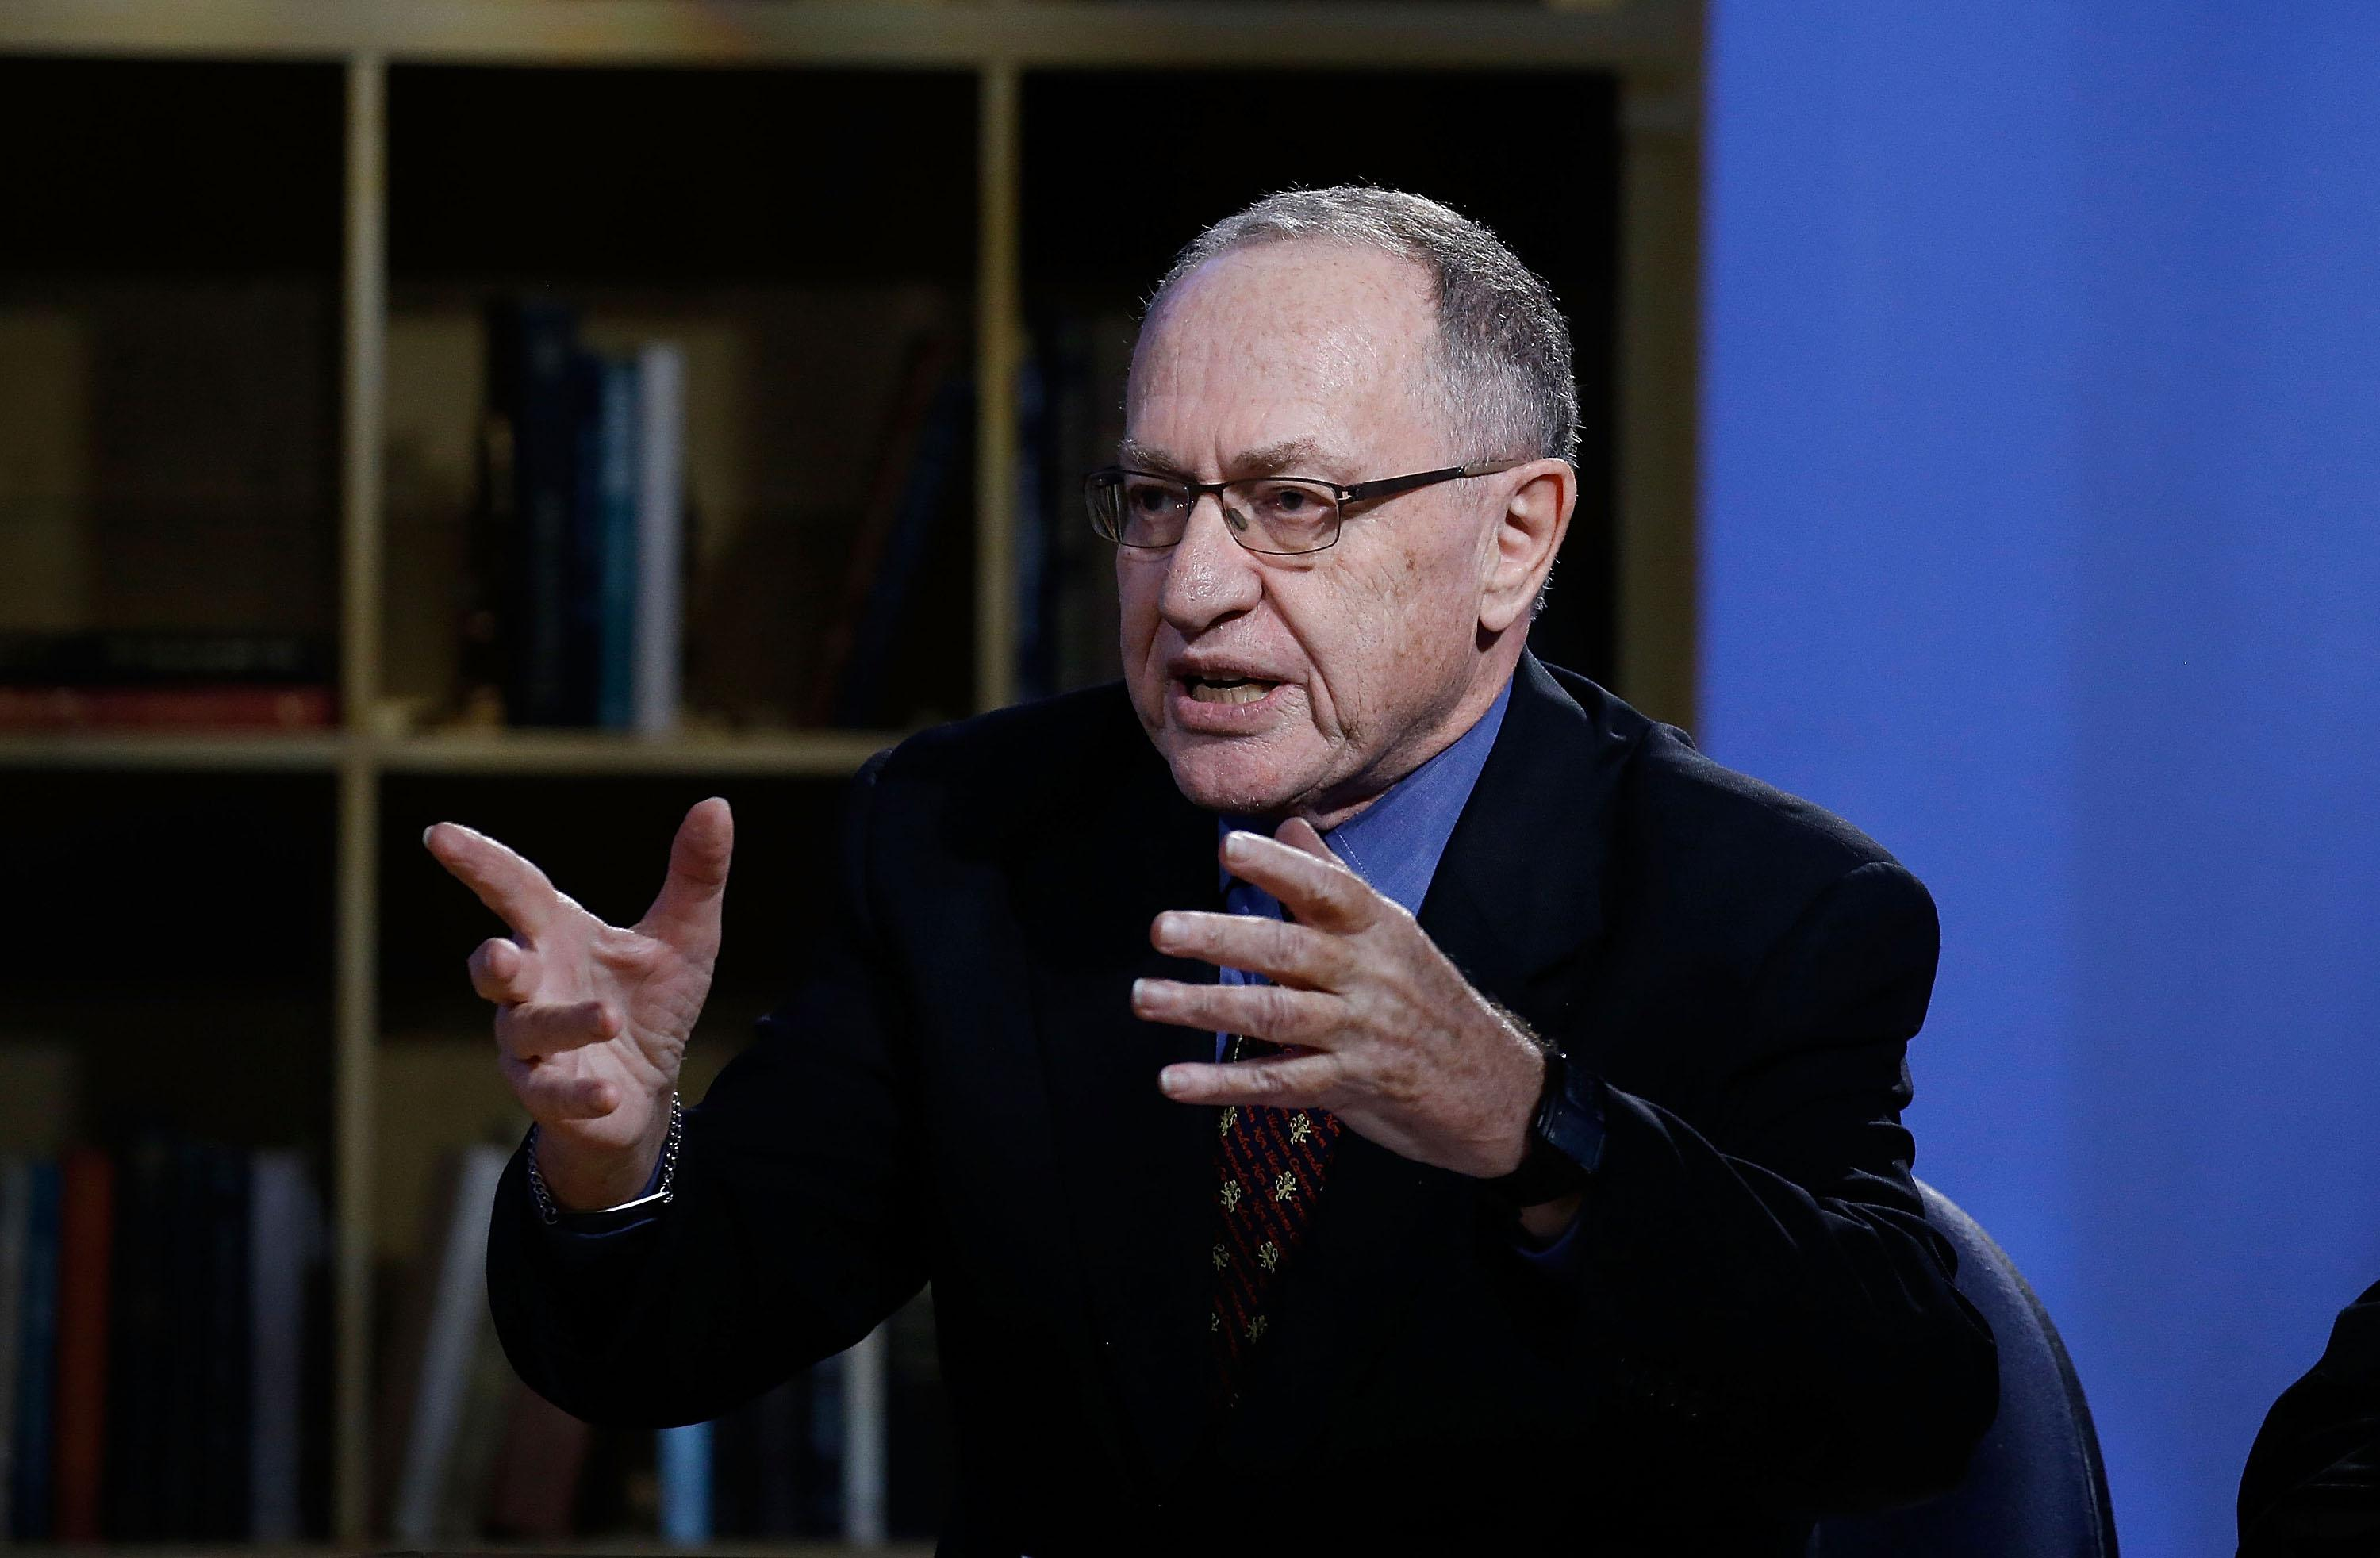 Alan Dershowitz at an event on Feb. 3, 2016, in New York City.